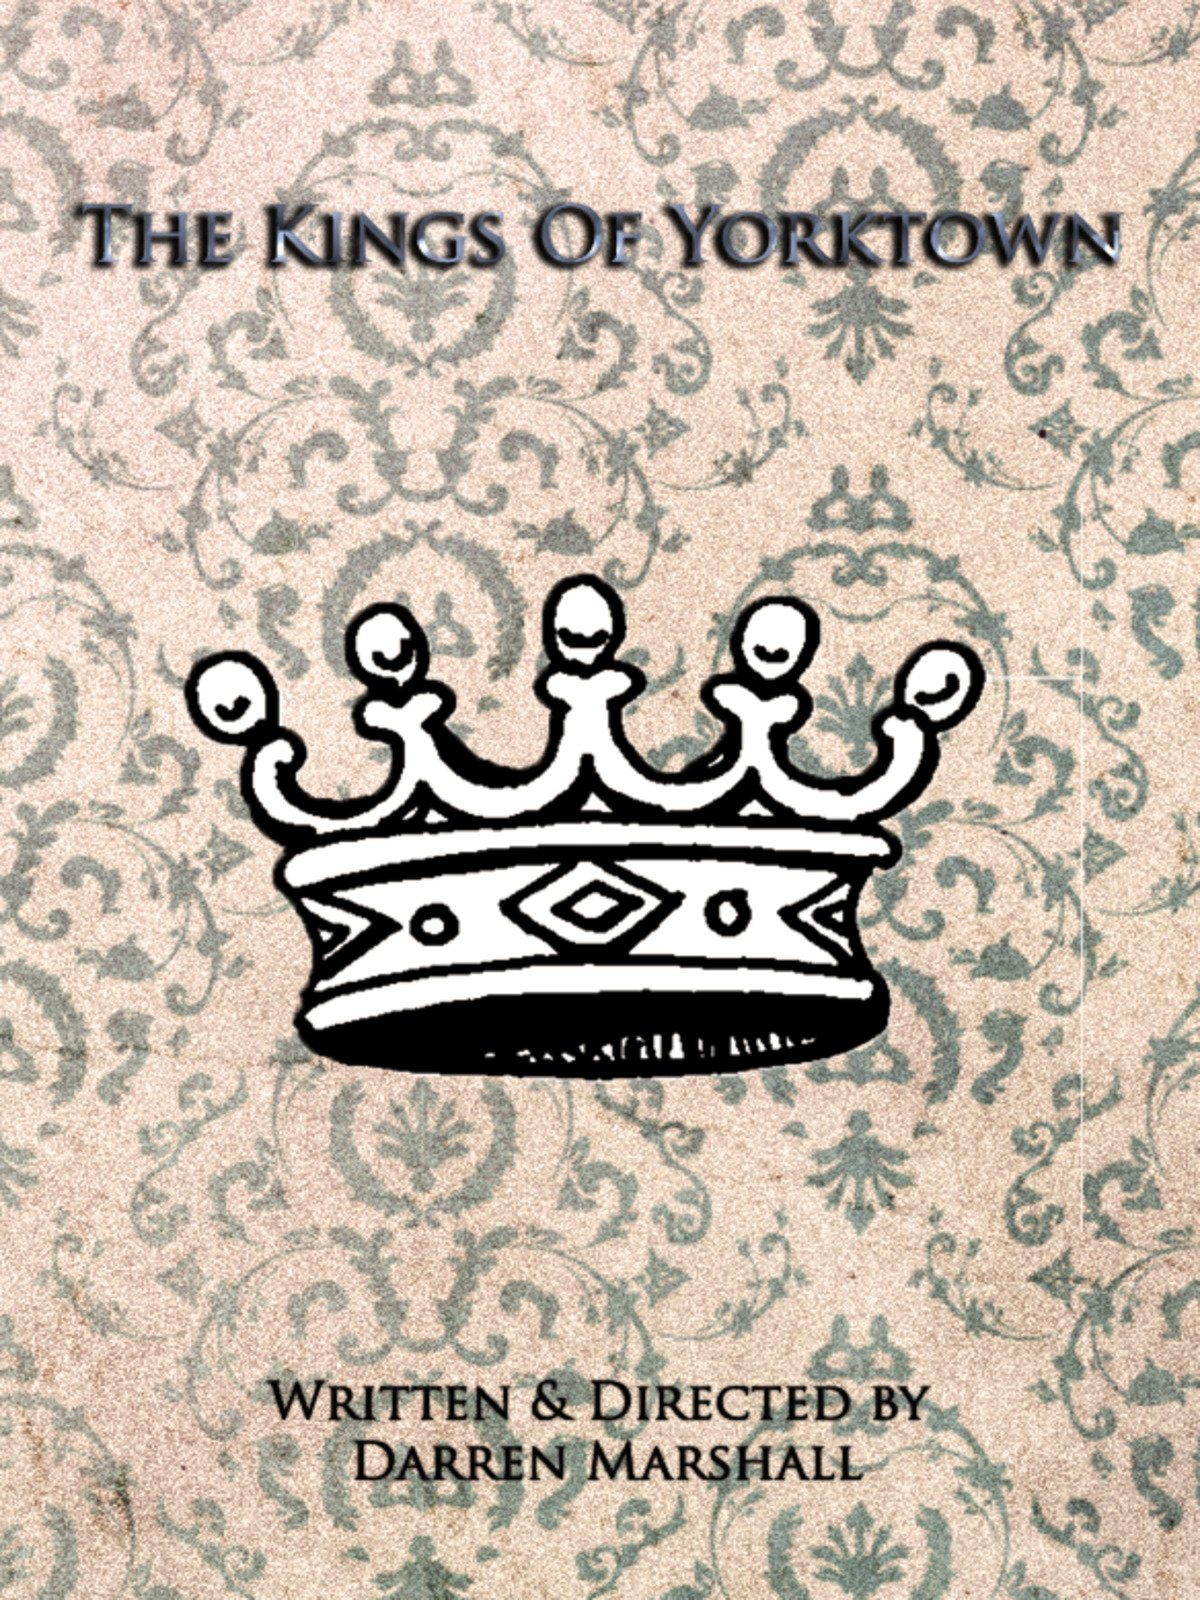 The Kings of Yorktown